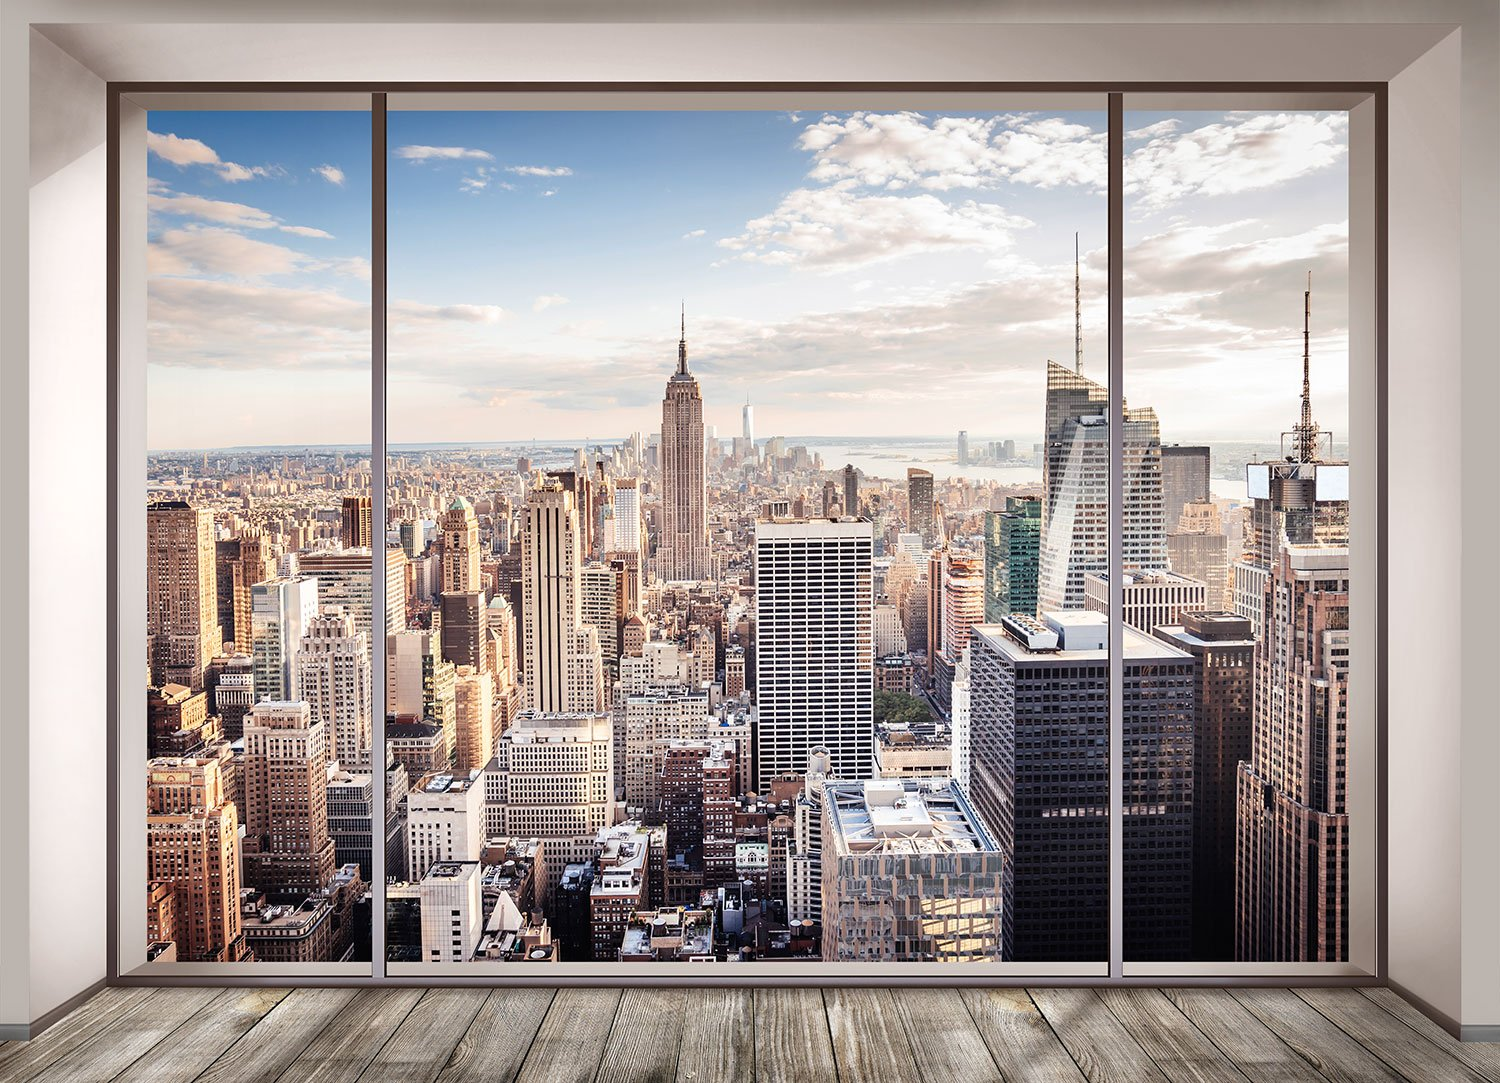 Wall Murals: View of New York from a room